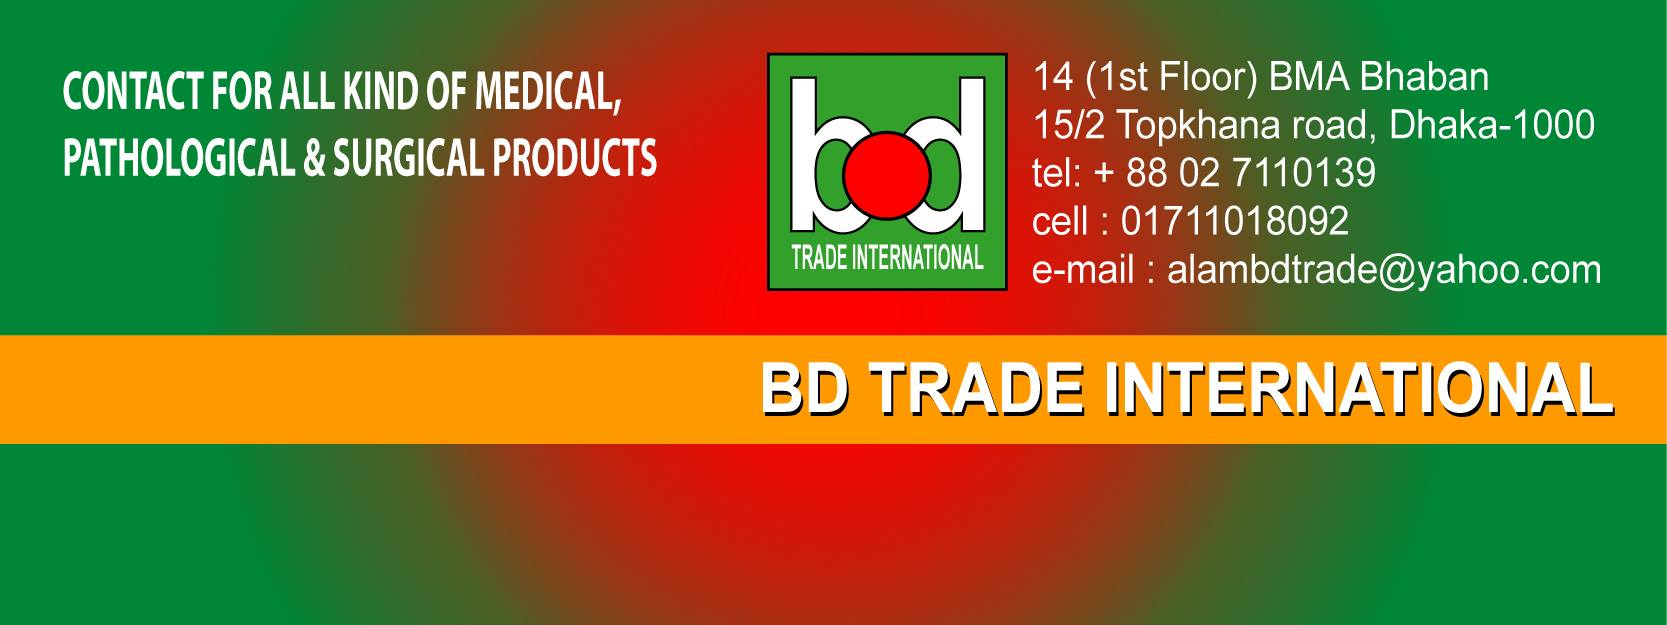 BD TRADE INTERNATIONAL